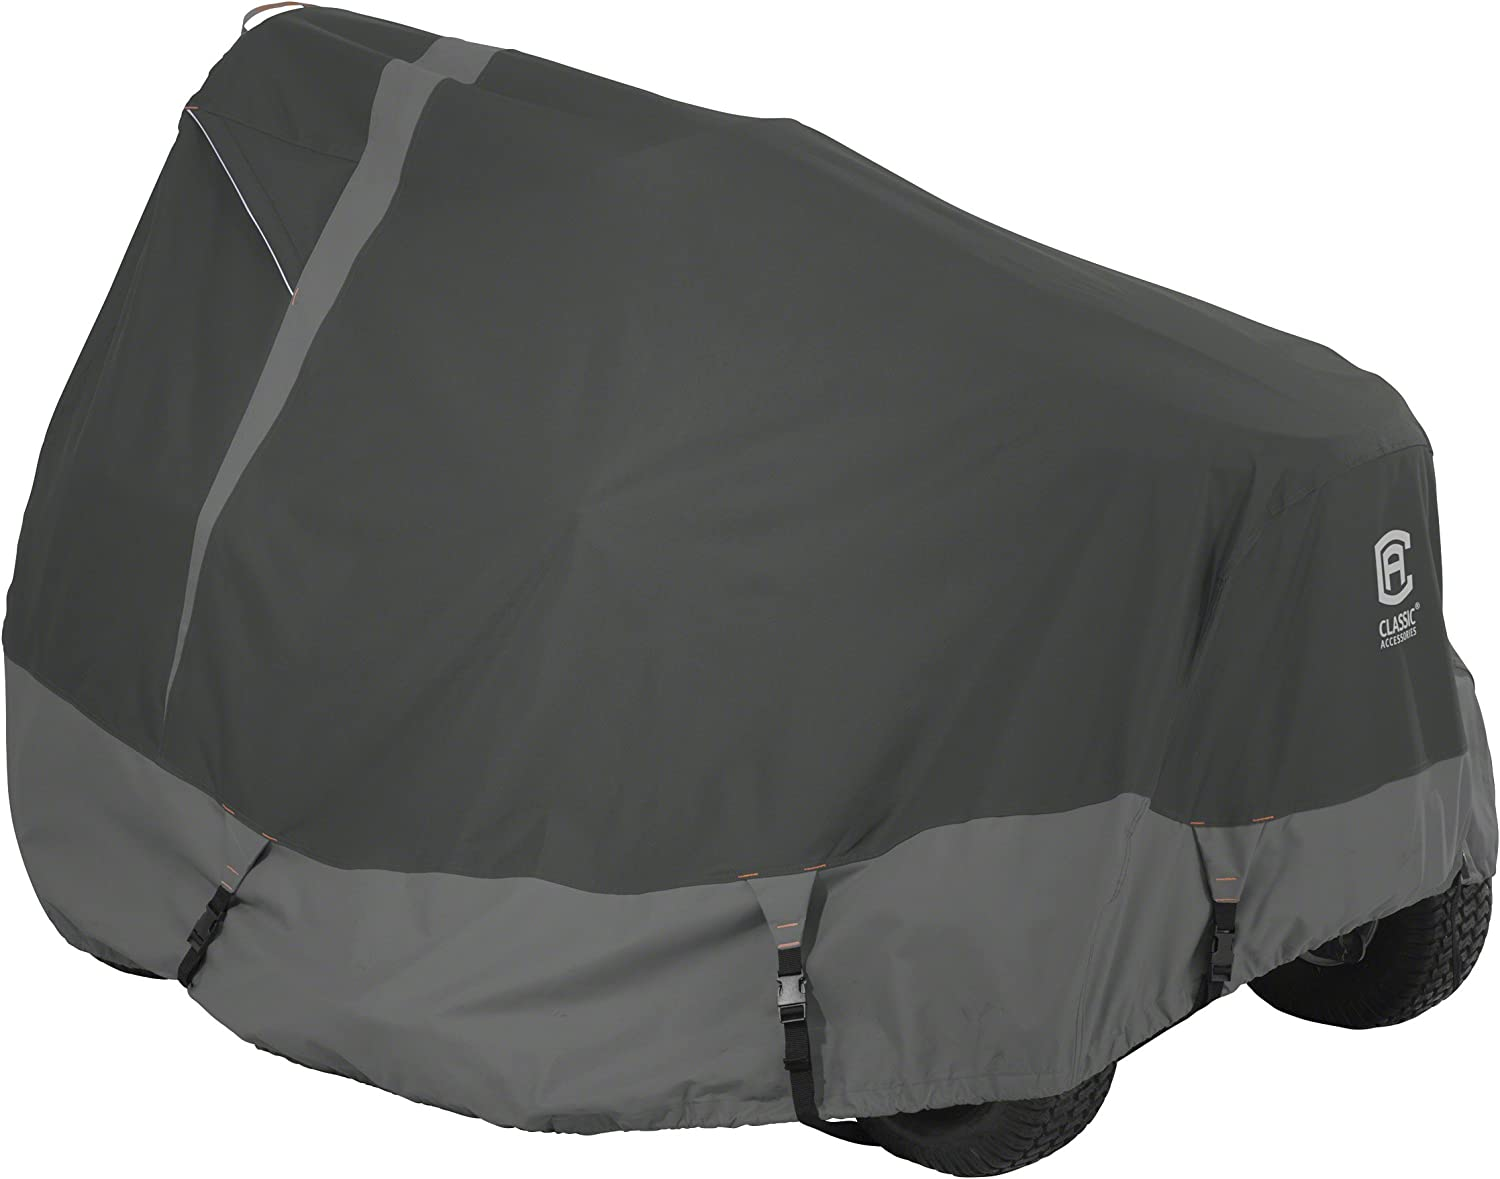 "Classic Accessories Heavy Duty Lawn Tractor Cover, Up to 62"" Decks"